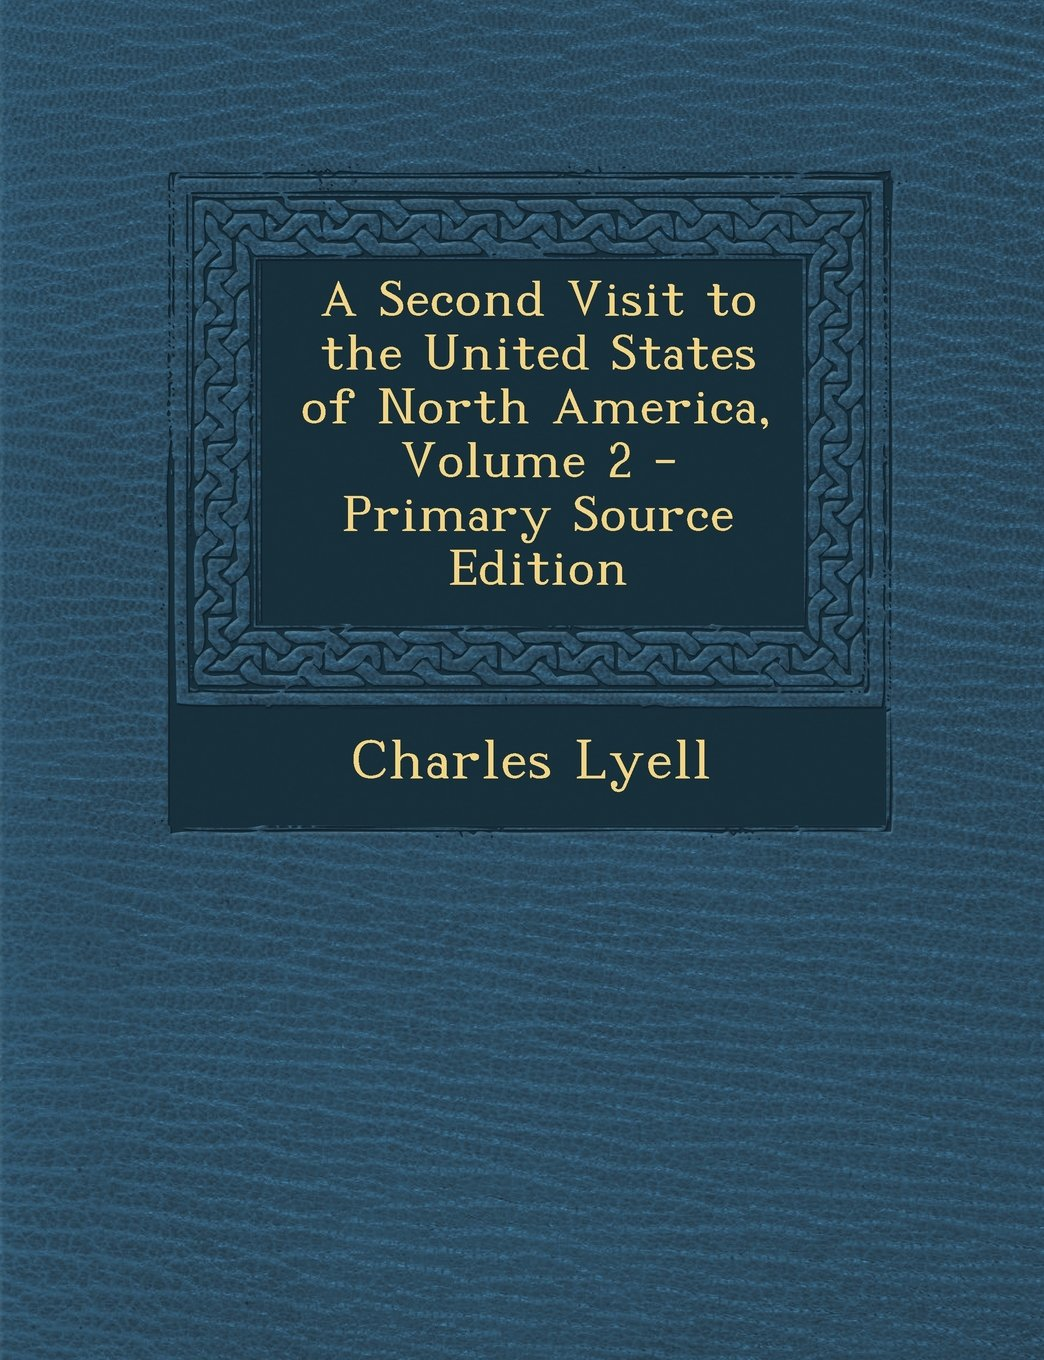 A Second Visit to the United States of North America, Volume 2 - Primary Source Edition pdf epub